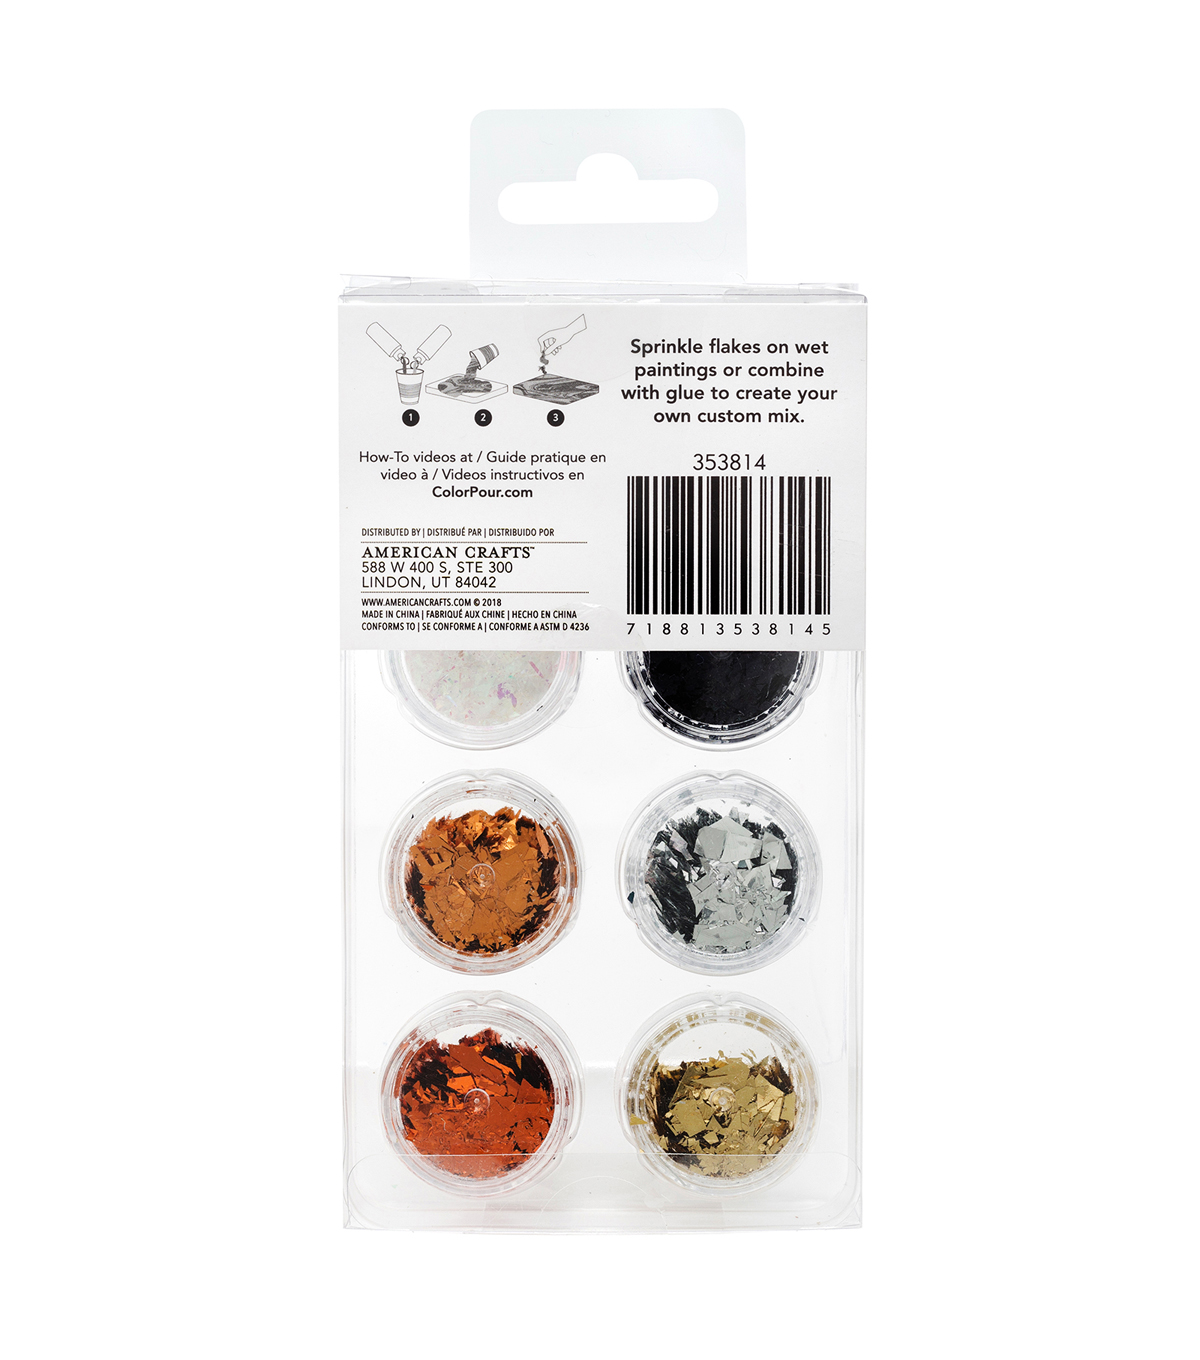 American Crafts Color Pour Embellish Foil Flakes-Warm Metallic